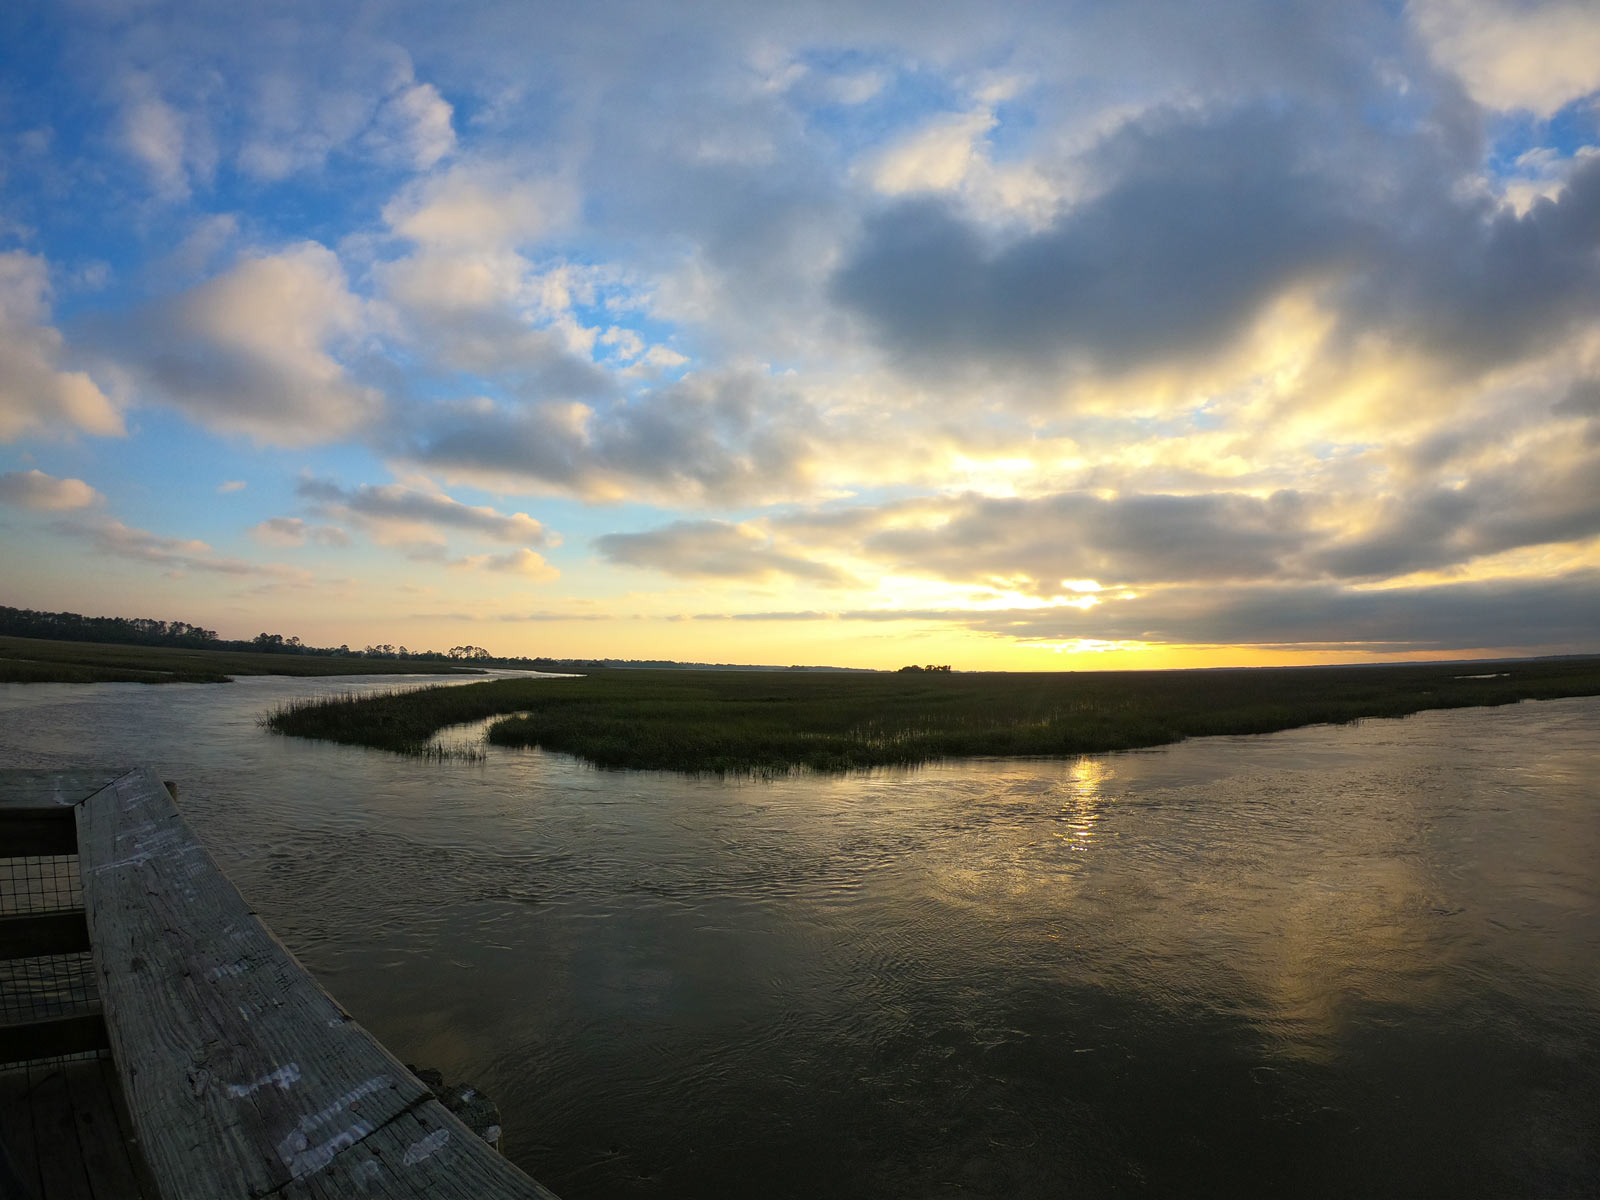 Sunset over the salt marshes at the Marshwalk Boardwalk on Hunting Island State Park, SC Trail deck